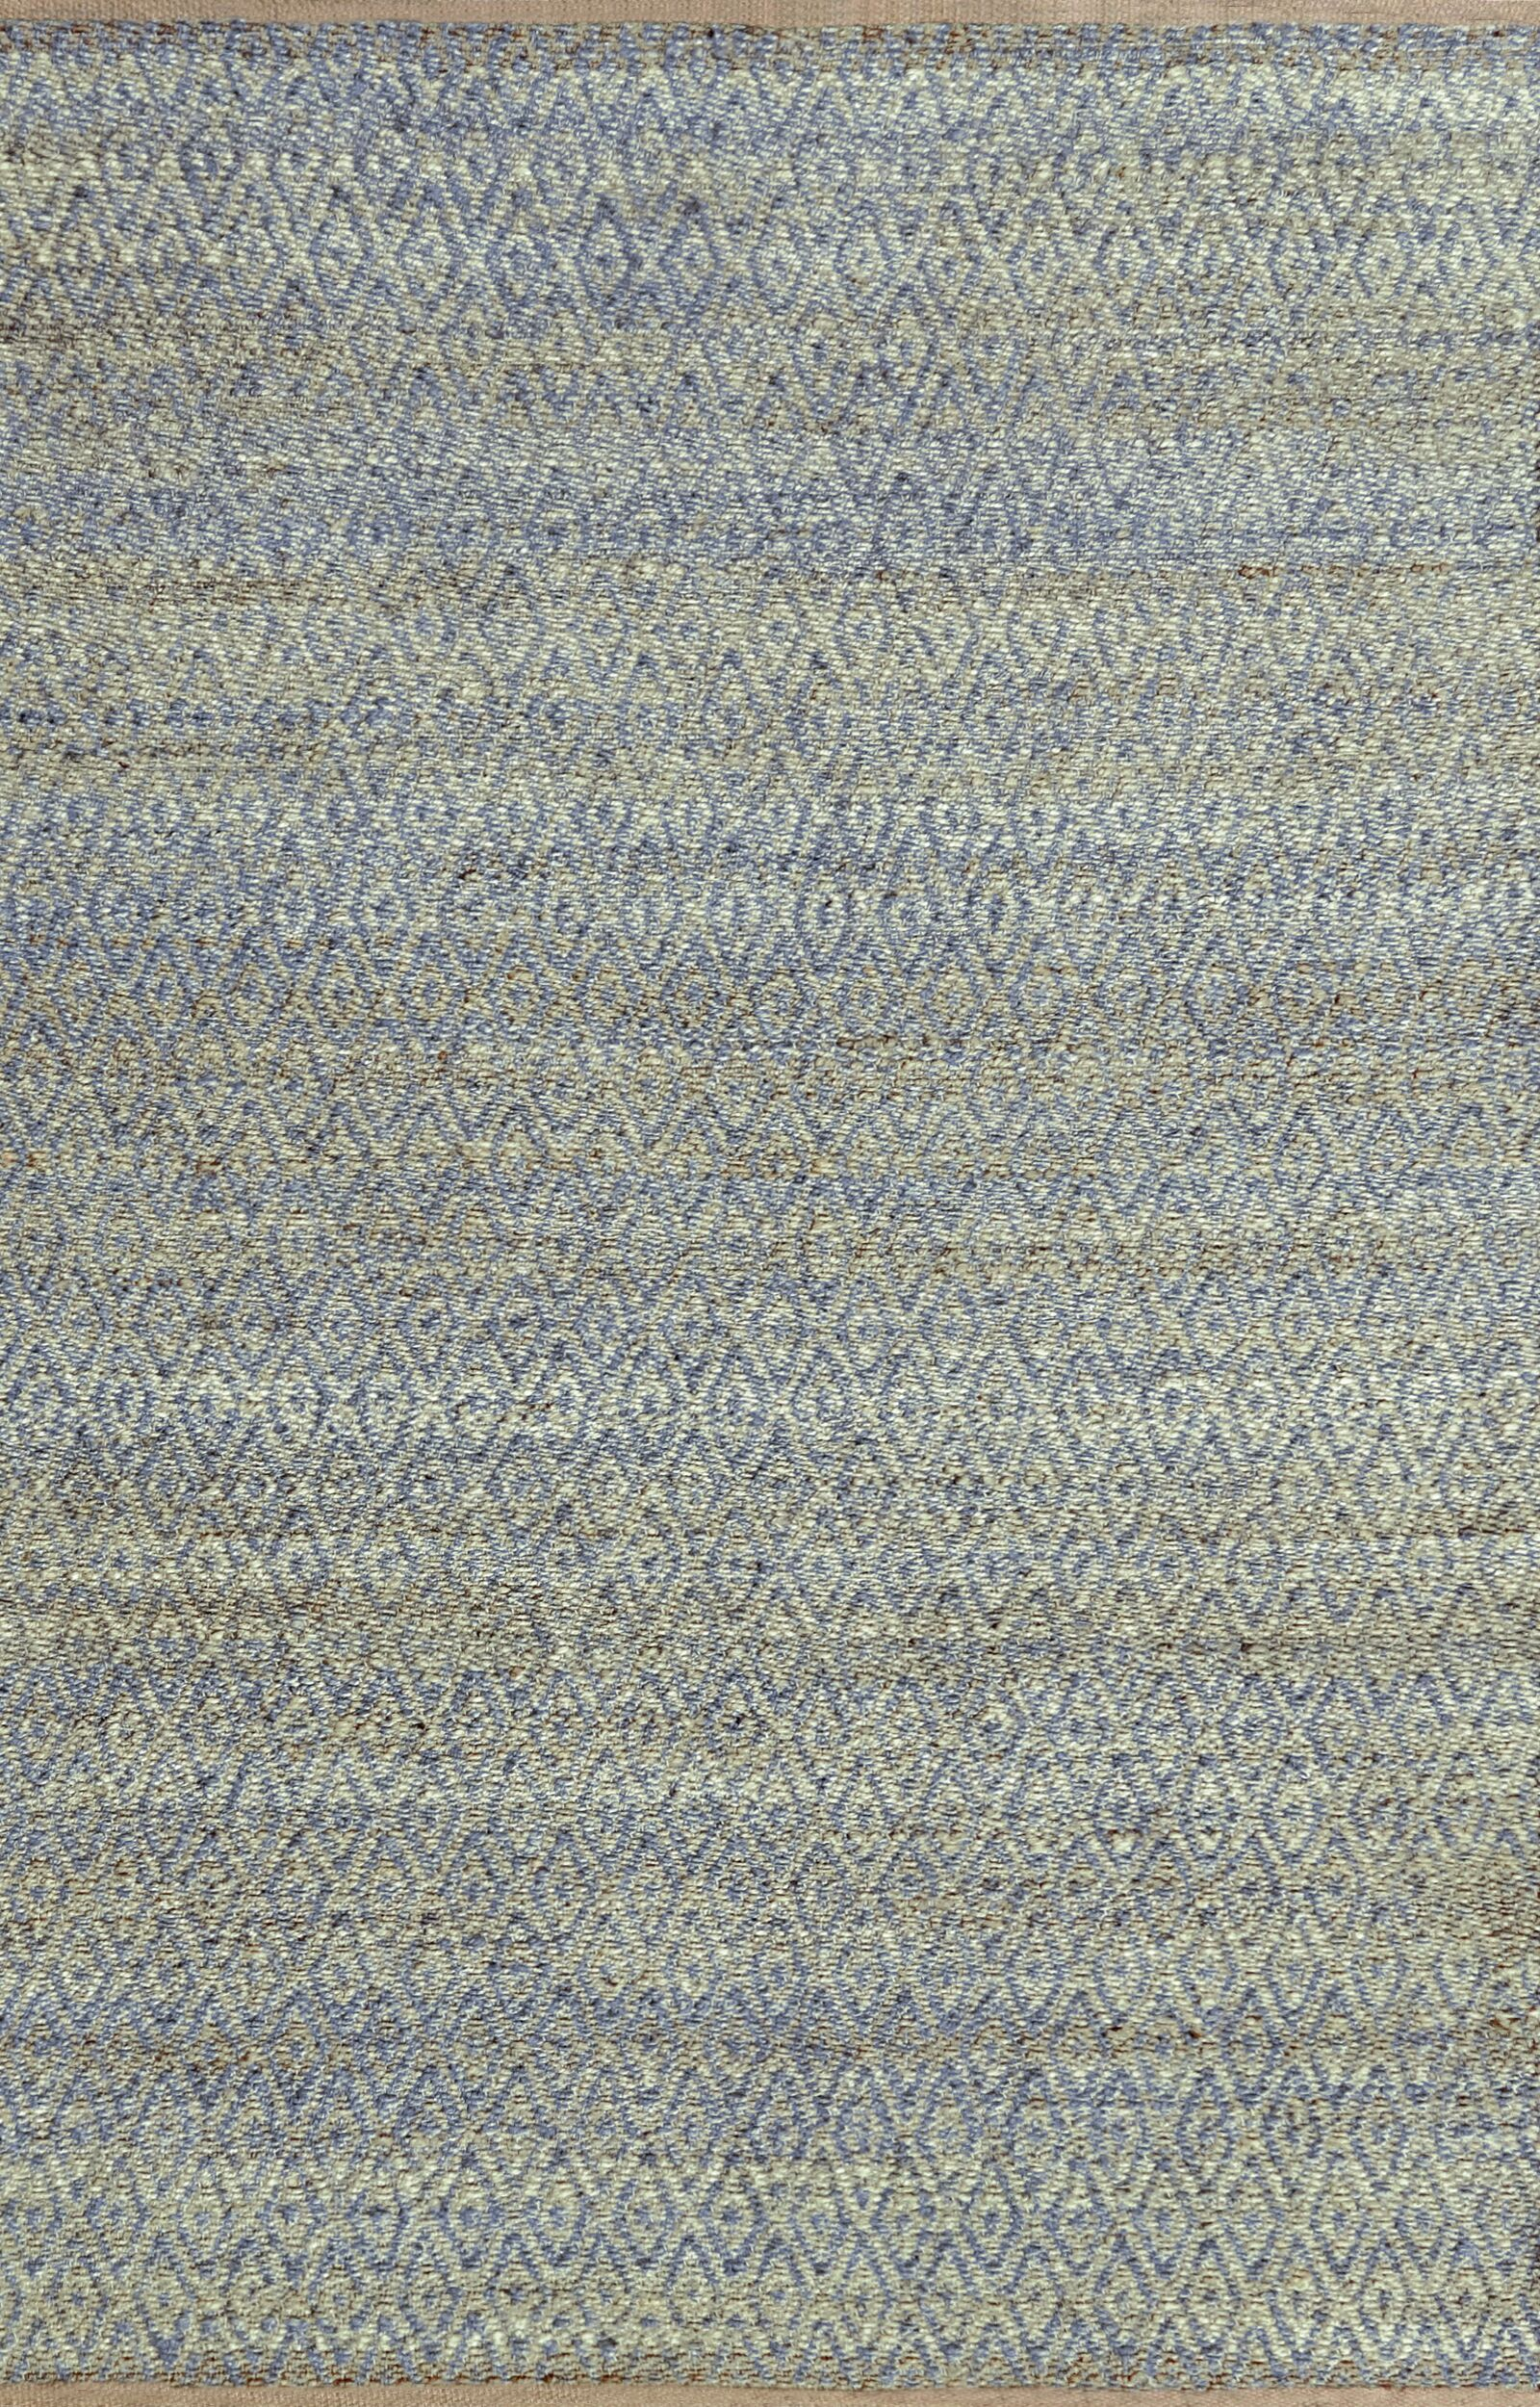 Azaria Hand-Woven Blue Area Rug Rug Size: Runner 2'6